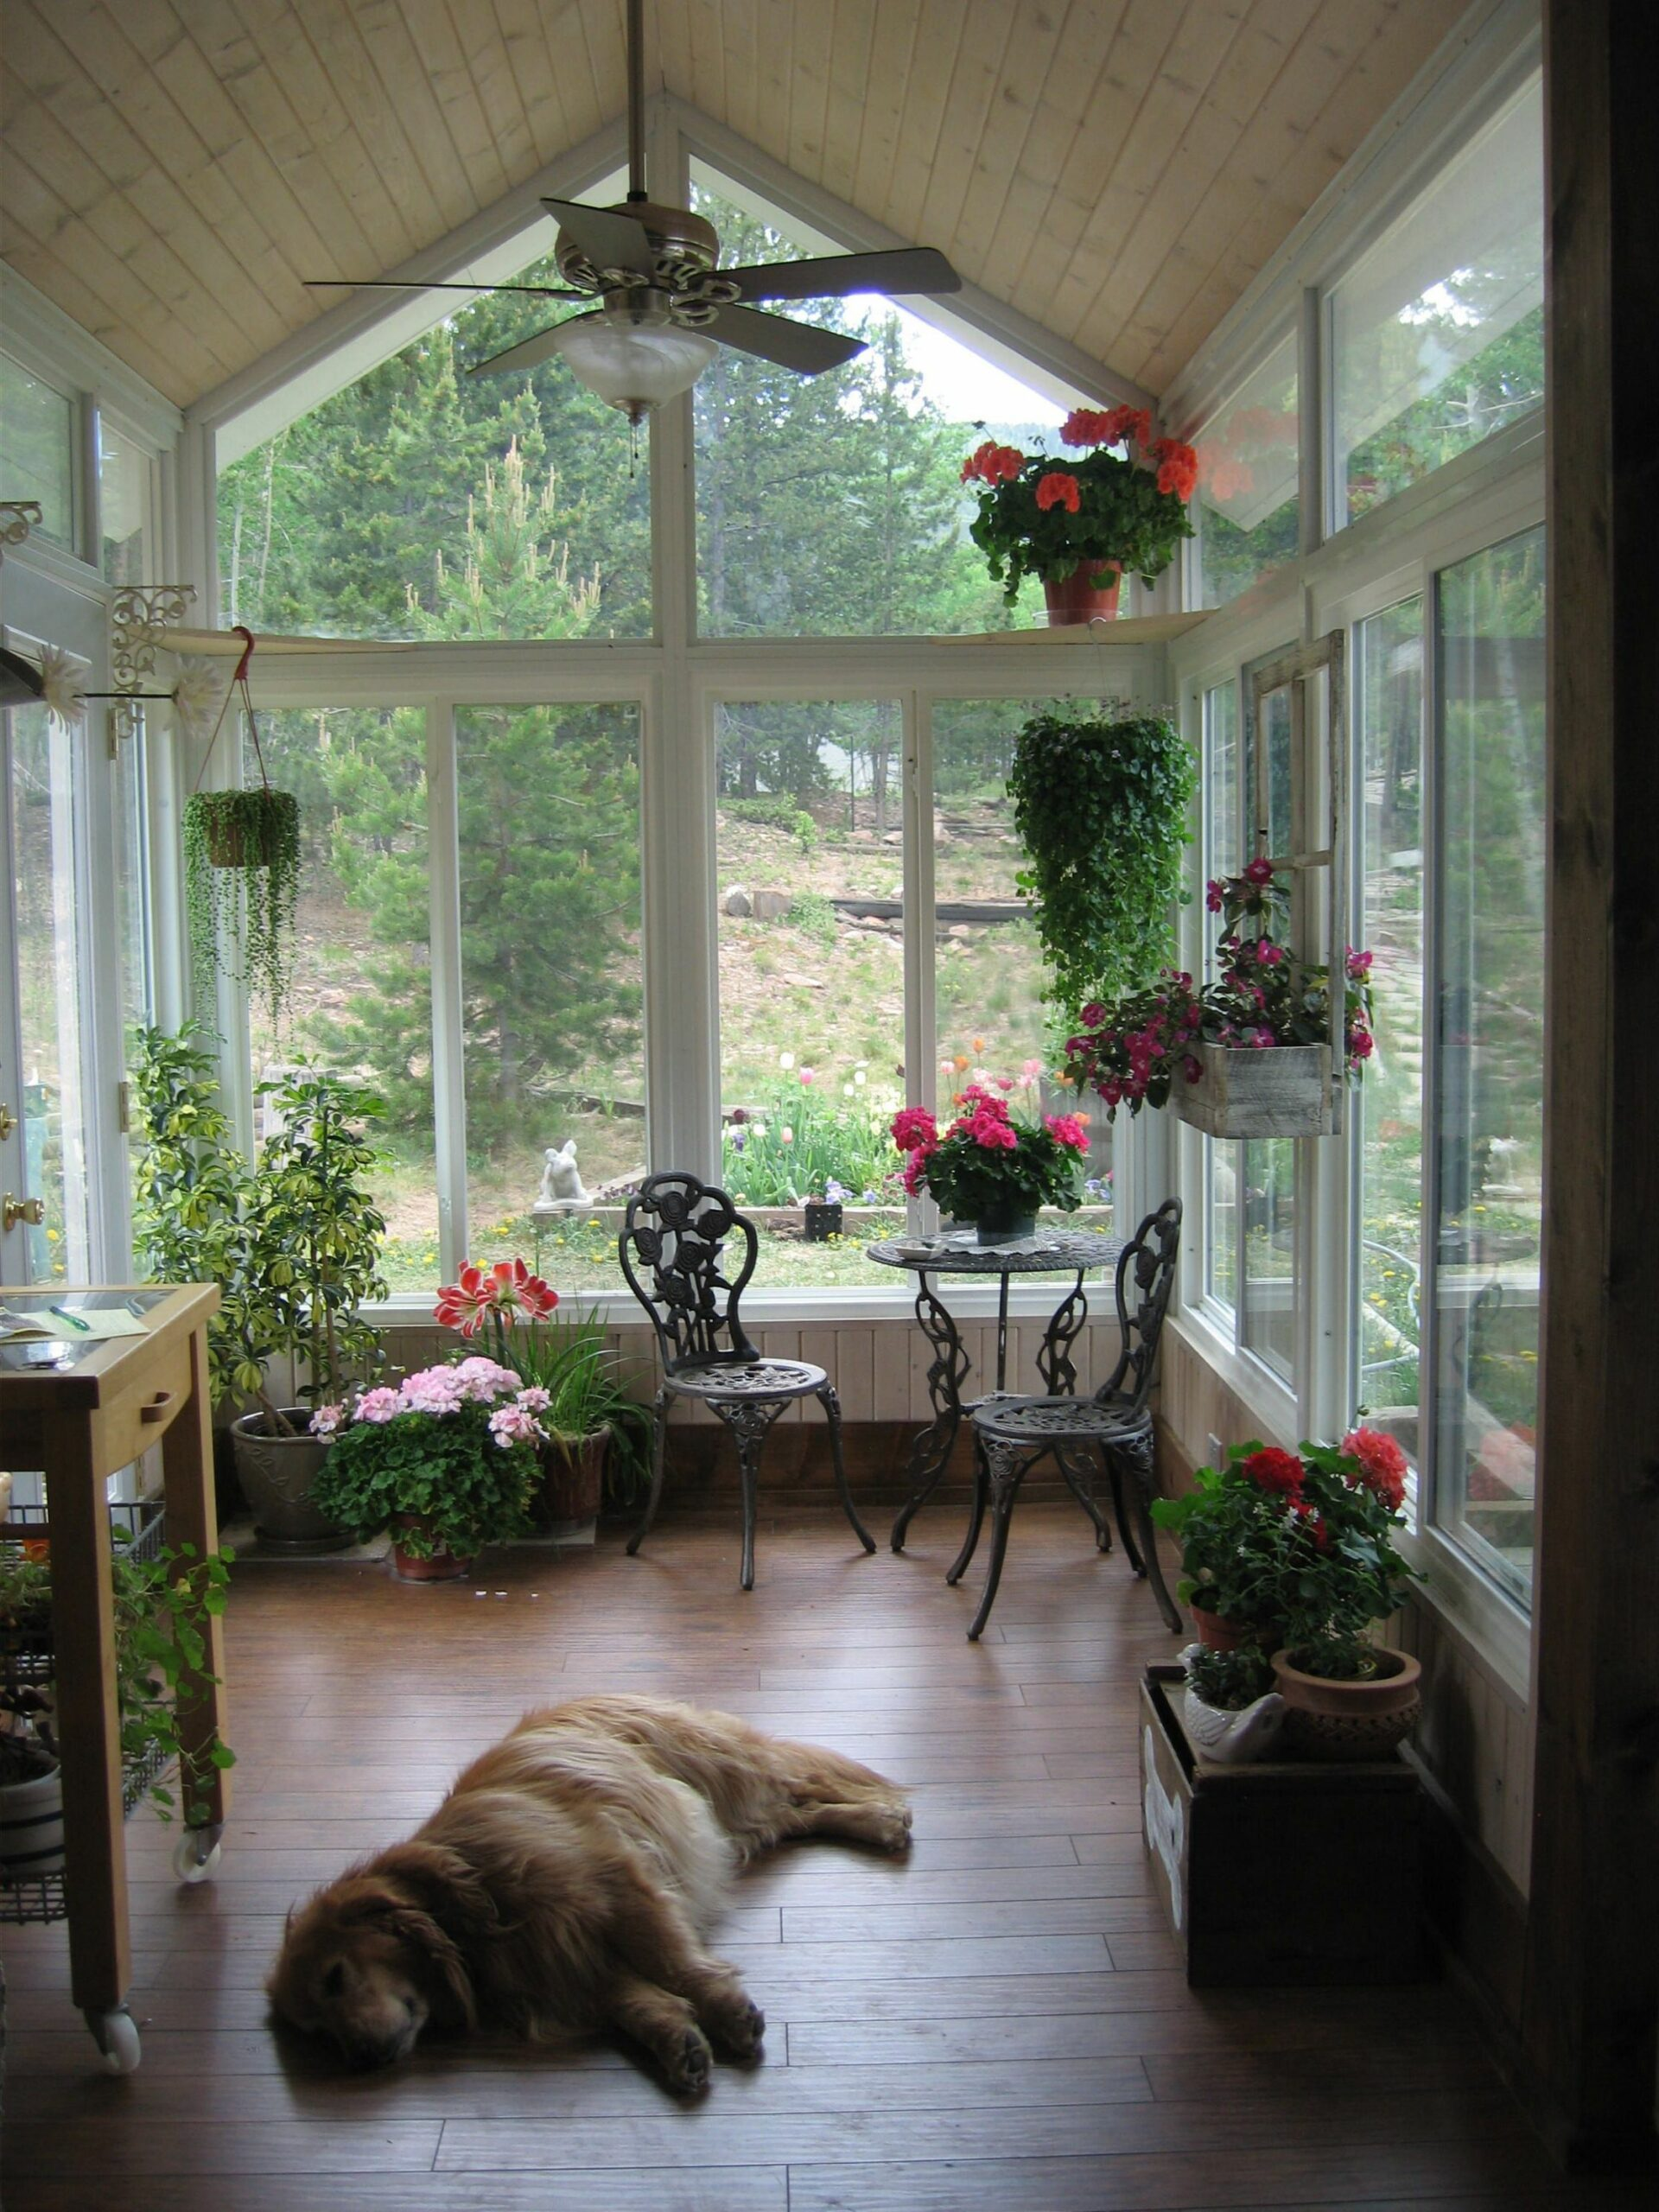 Pin by karen torres on porch | Small sunroom, Sunroom decorating ..